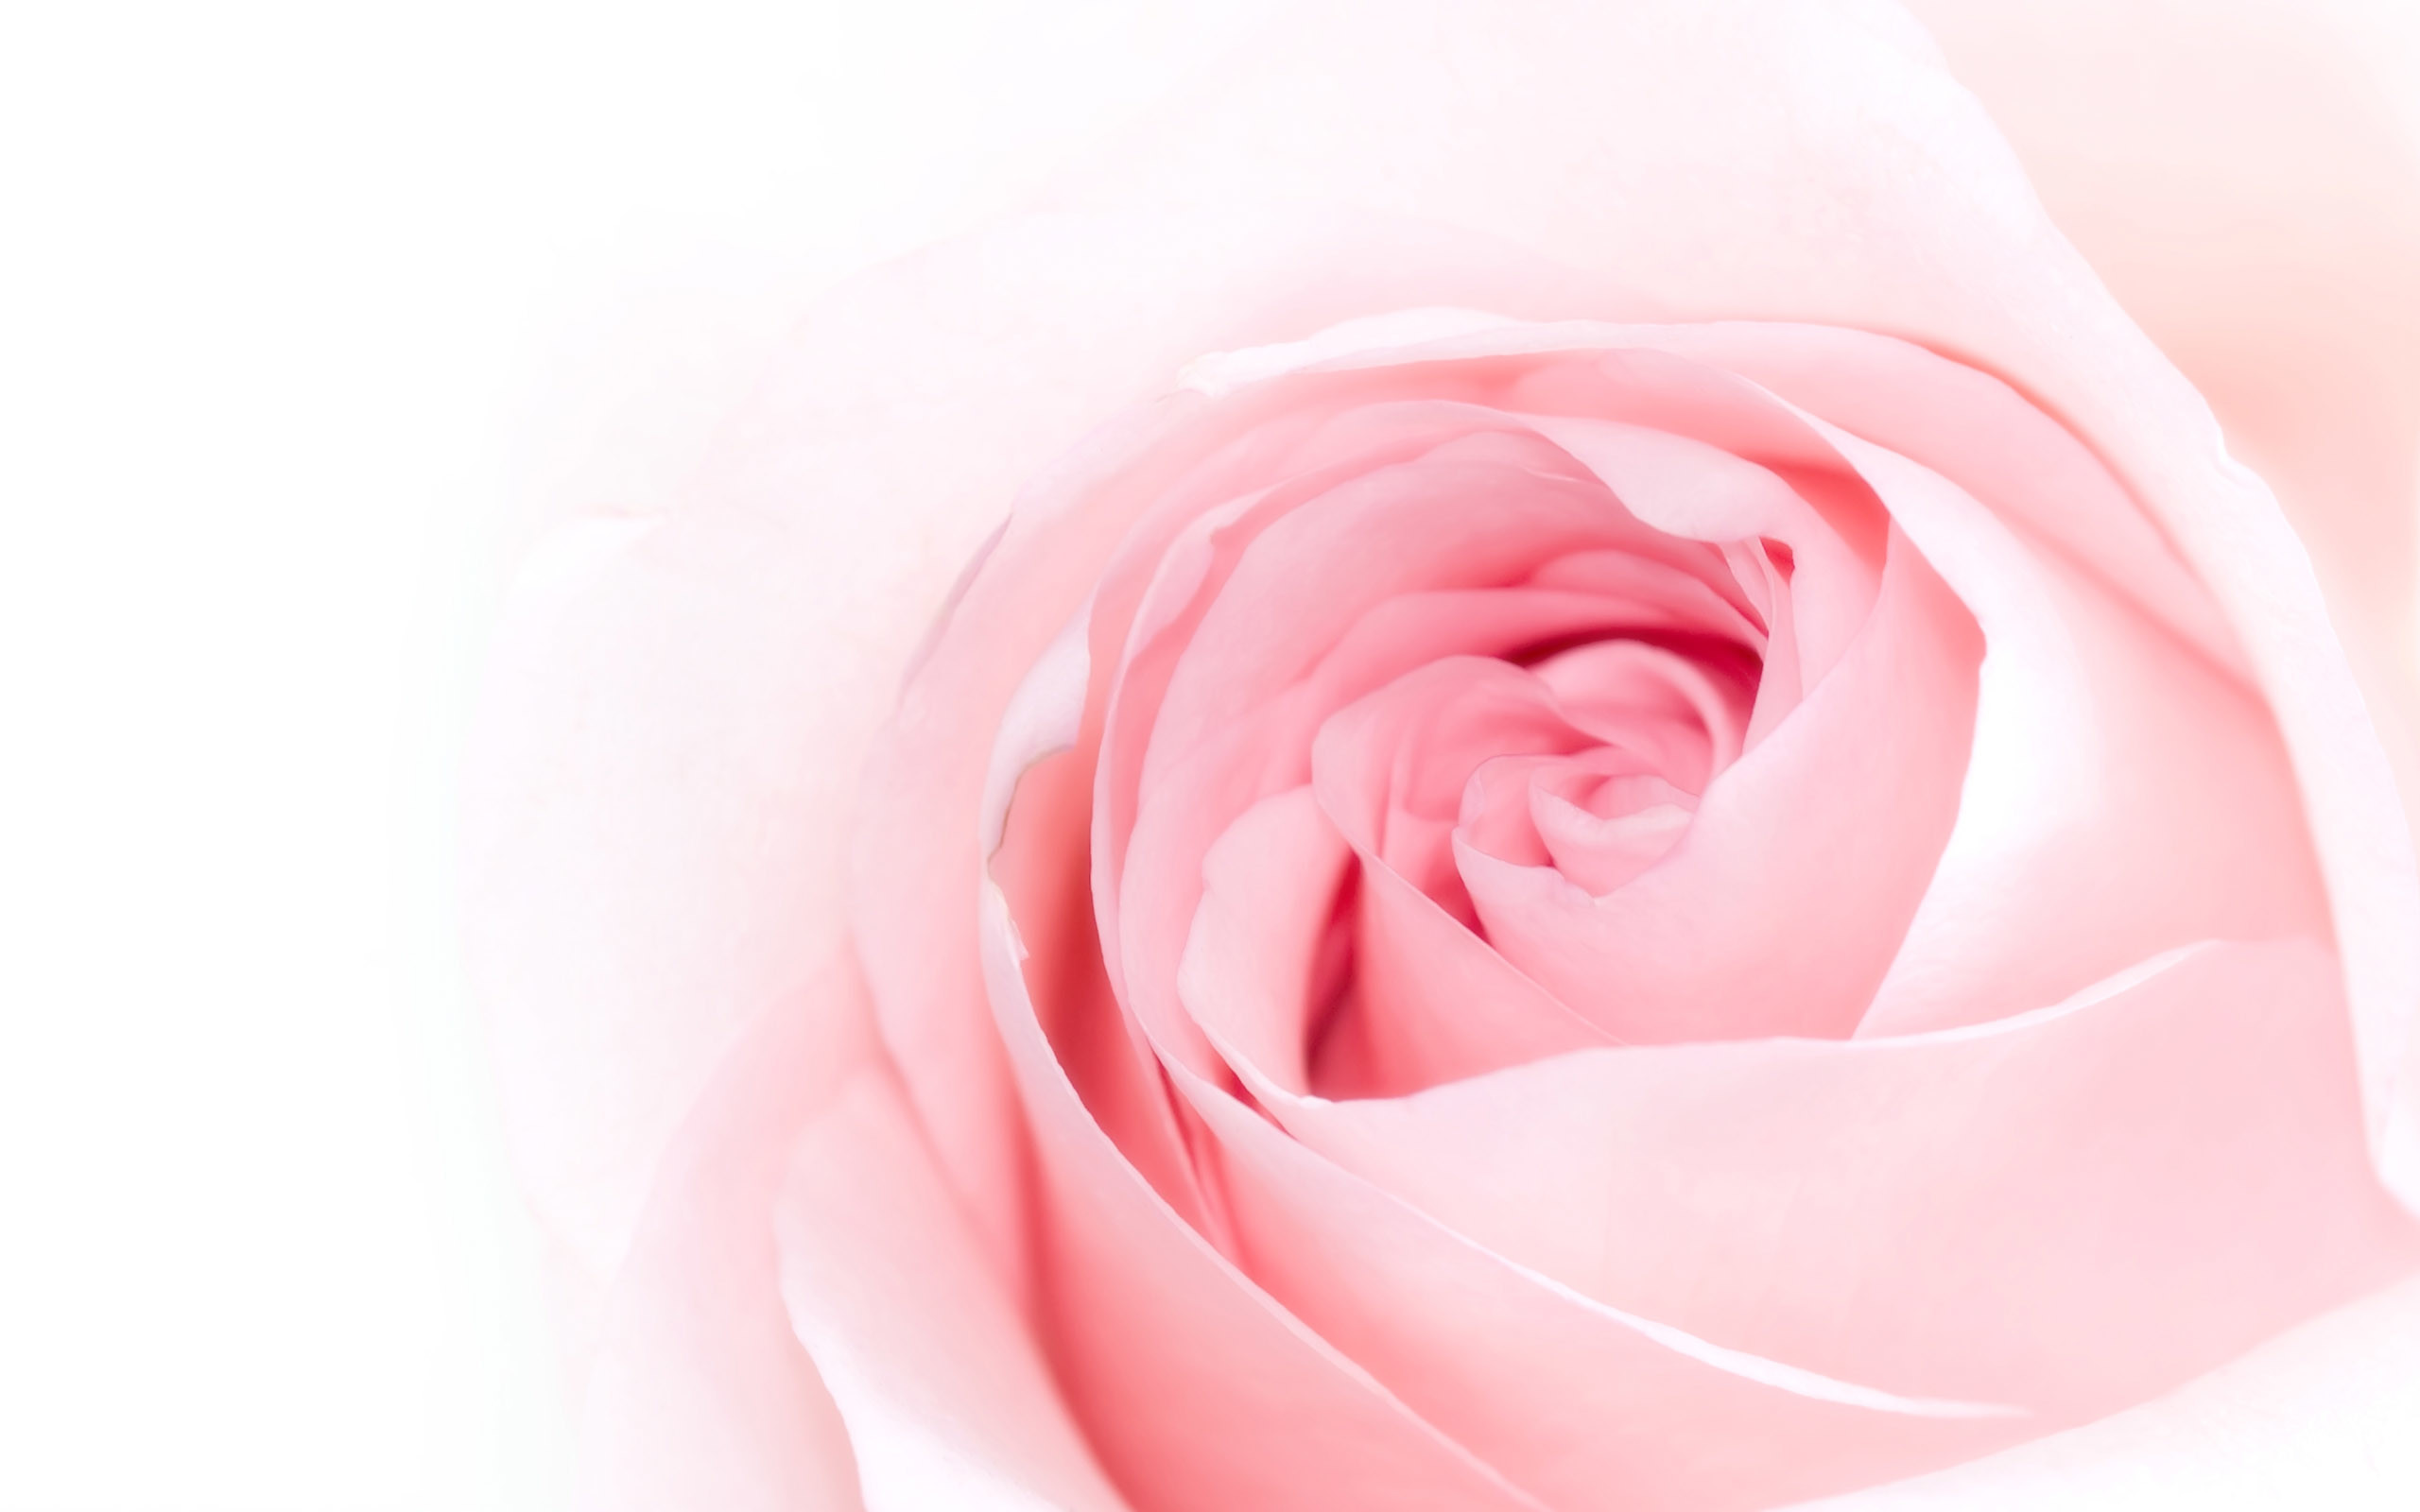 Pink rose background wallpapertag - Pink rose hd wallpaper ...